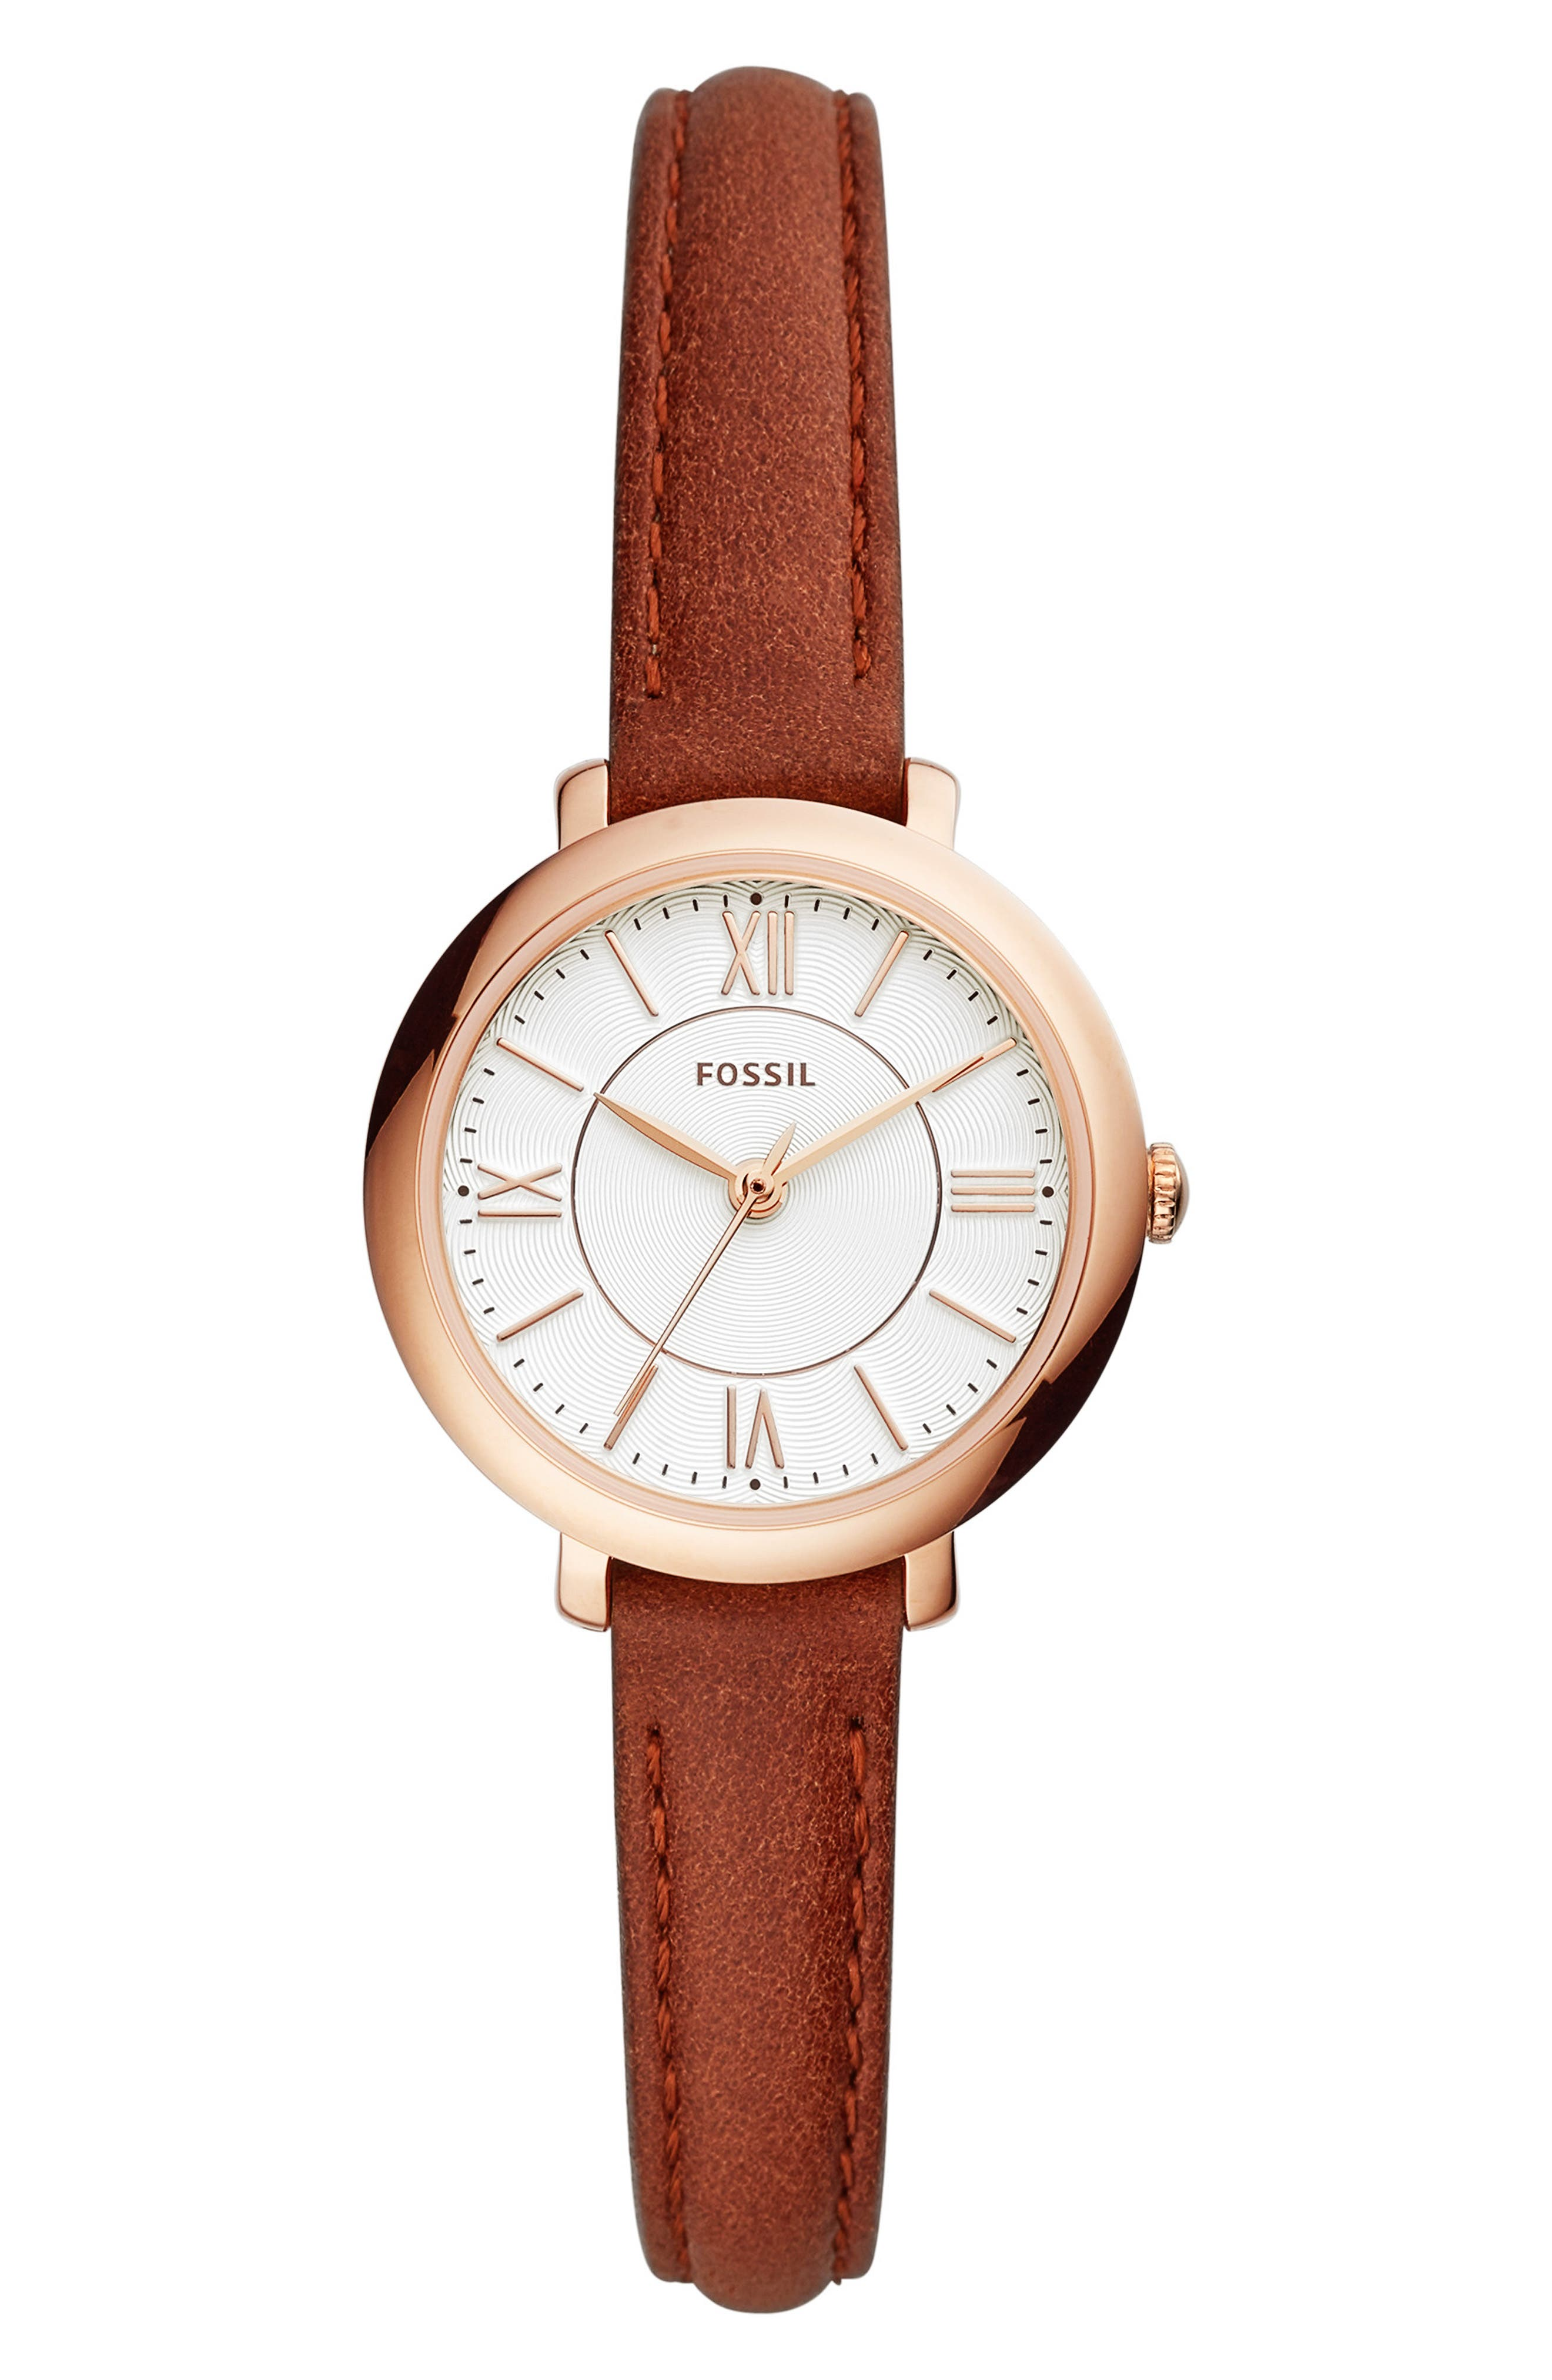 FOSSIL, Mini Jacqueline Leather Strap Watch, 27mm, Main thumbnail 1, color, BROWN/ WHITE/ ROSE GOLD